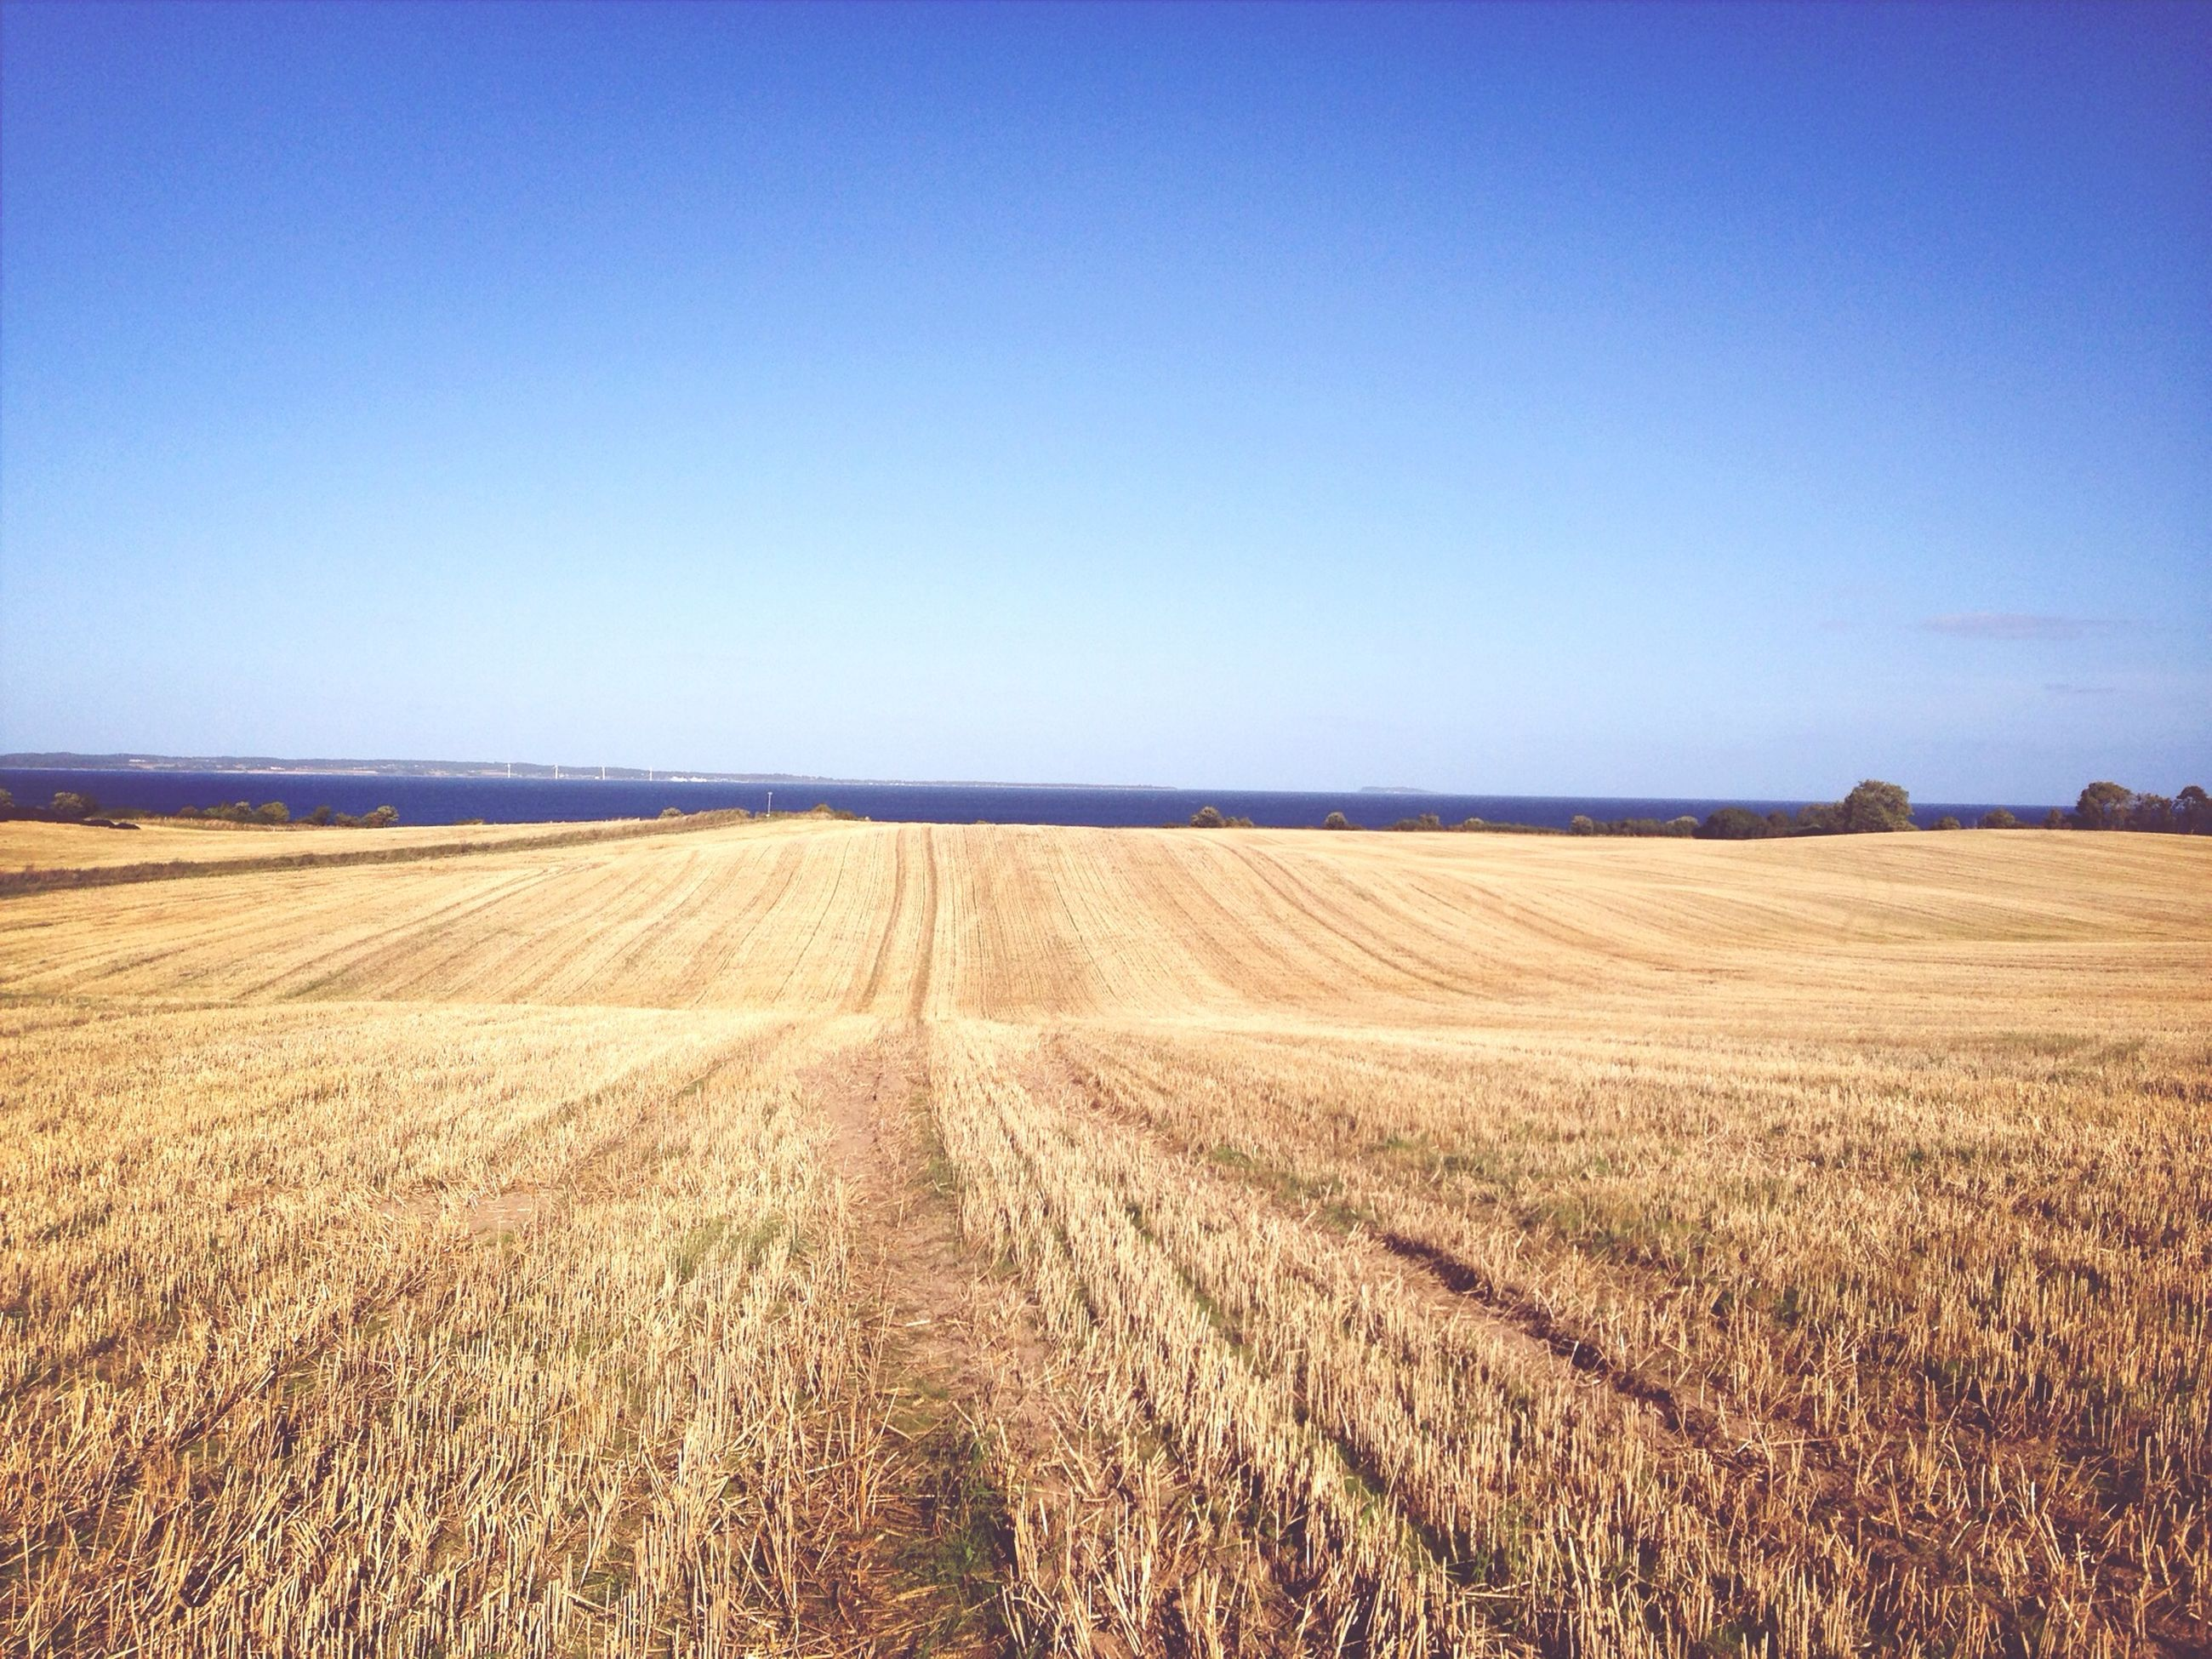 clear sky, landscape, copy space, tranquil scene, tranquility, field, blue, agriculture, rural scene, horizon over land, scenics, farm, nature, beauty in nature, crop, grass, remote, cultivated land, day, growth